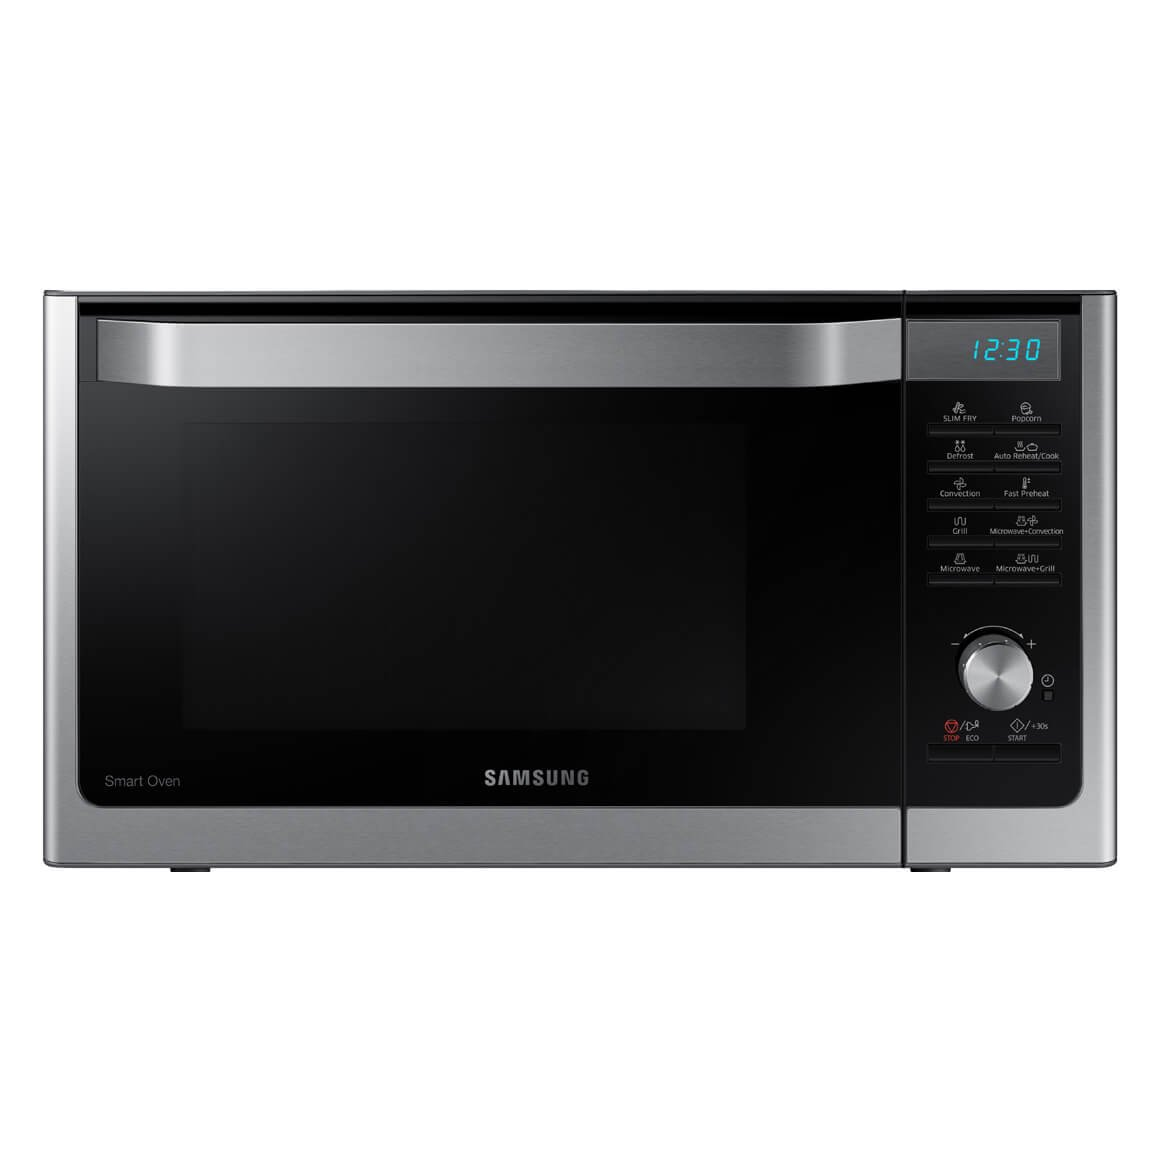 cornell toaster panasonic ovens combo microwave kitchen more harvey cooking appliances oven